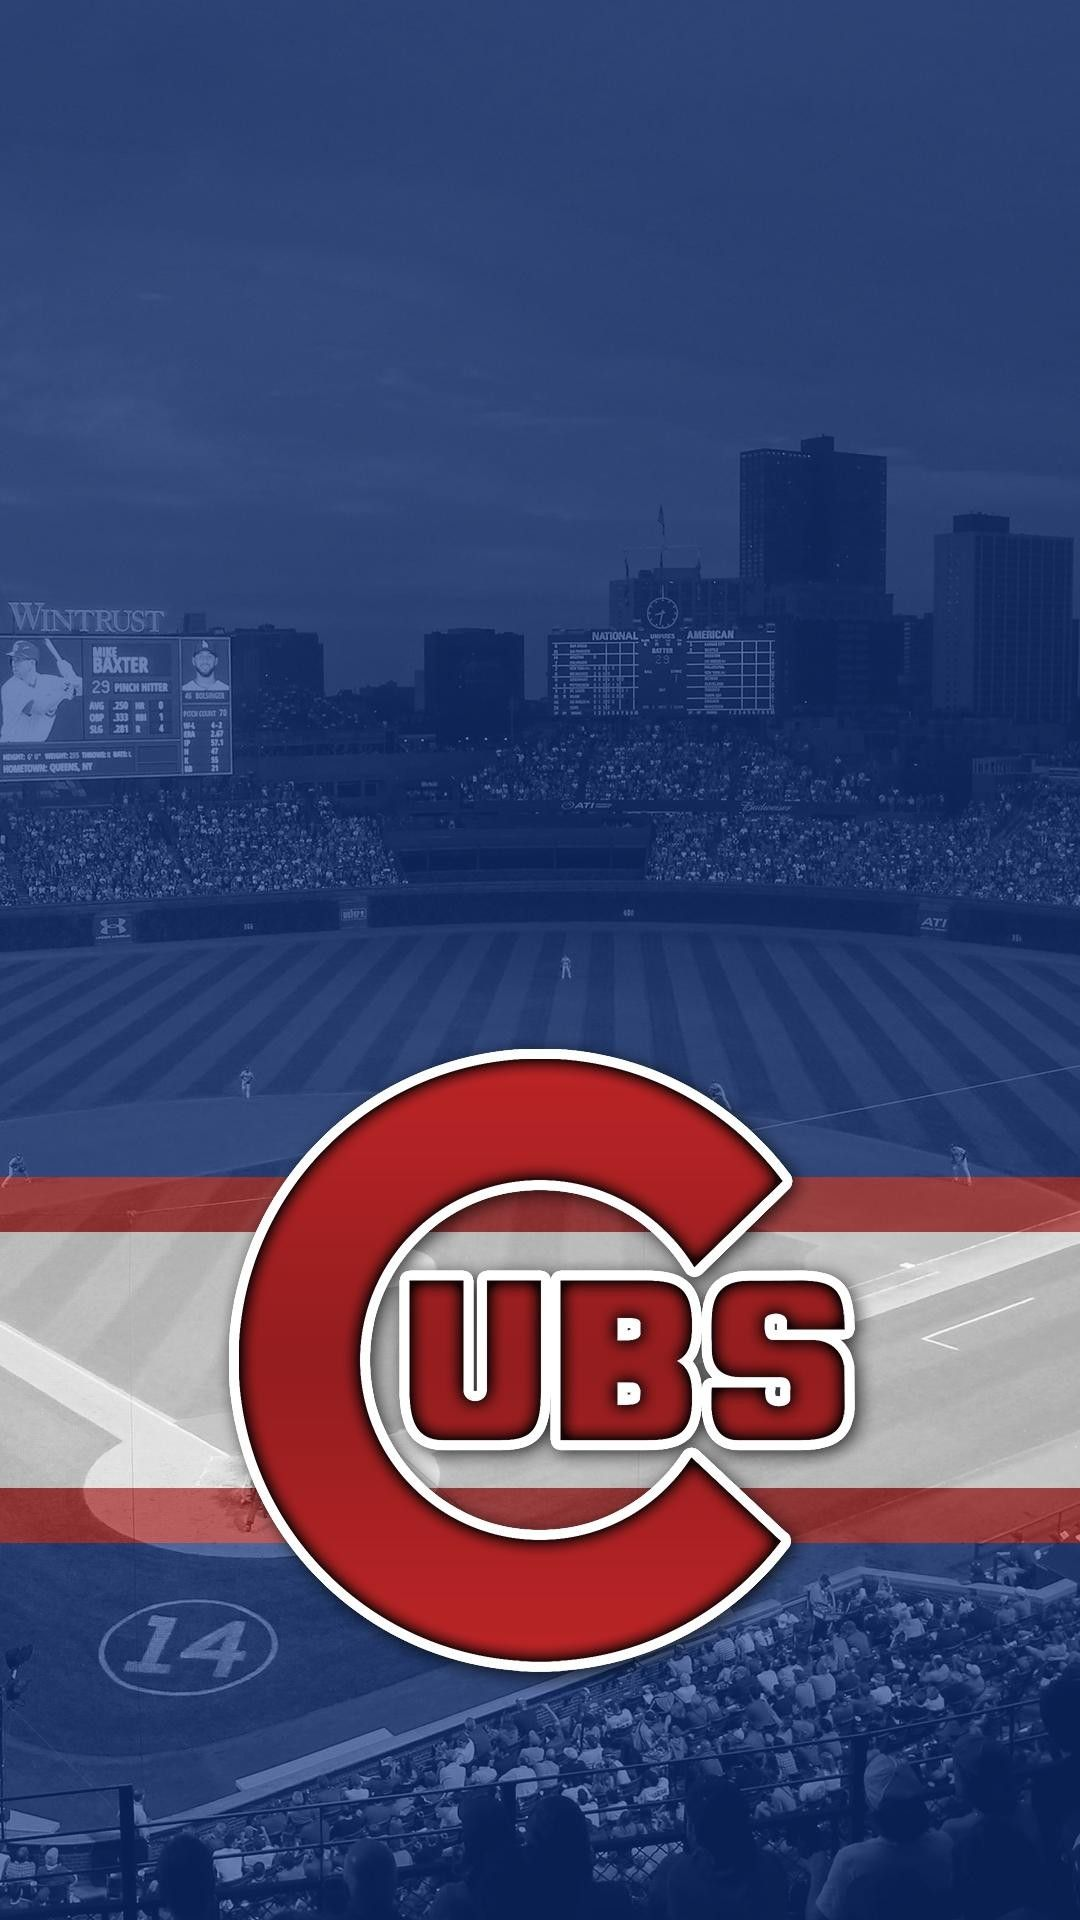 Chicago Cubs Wallpaper For Phones wallpapers 2020 (With